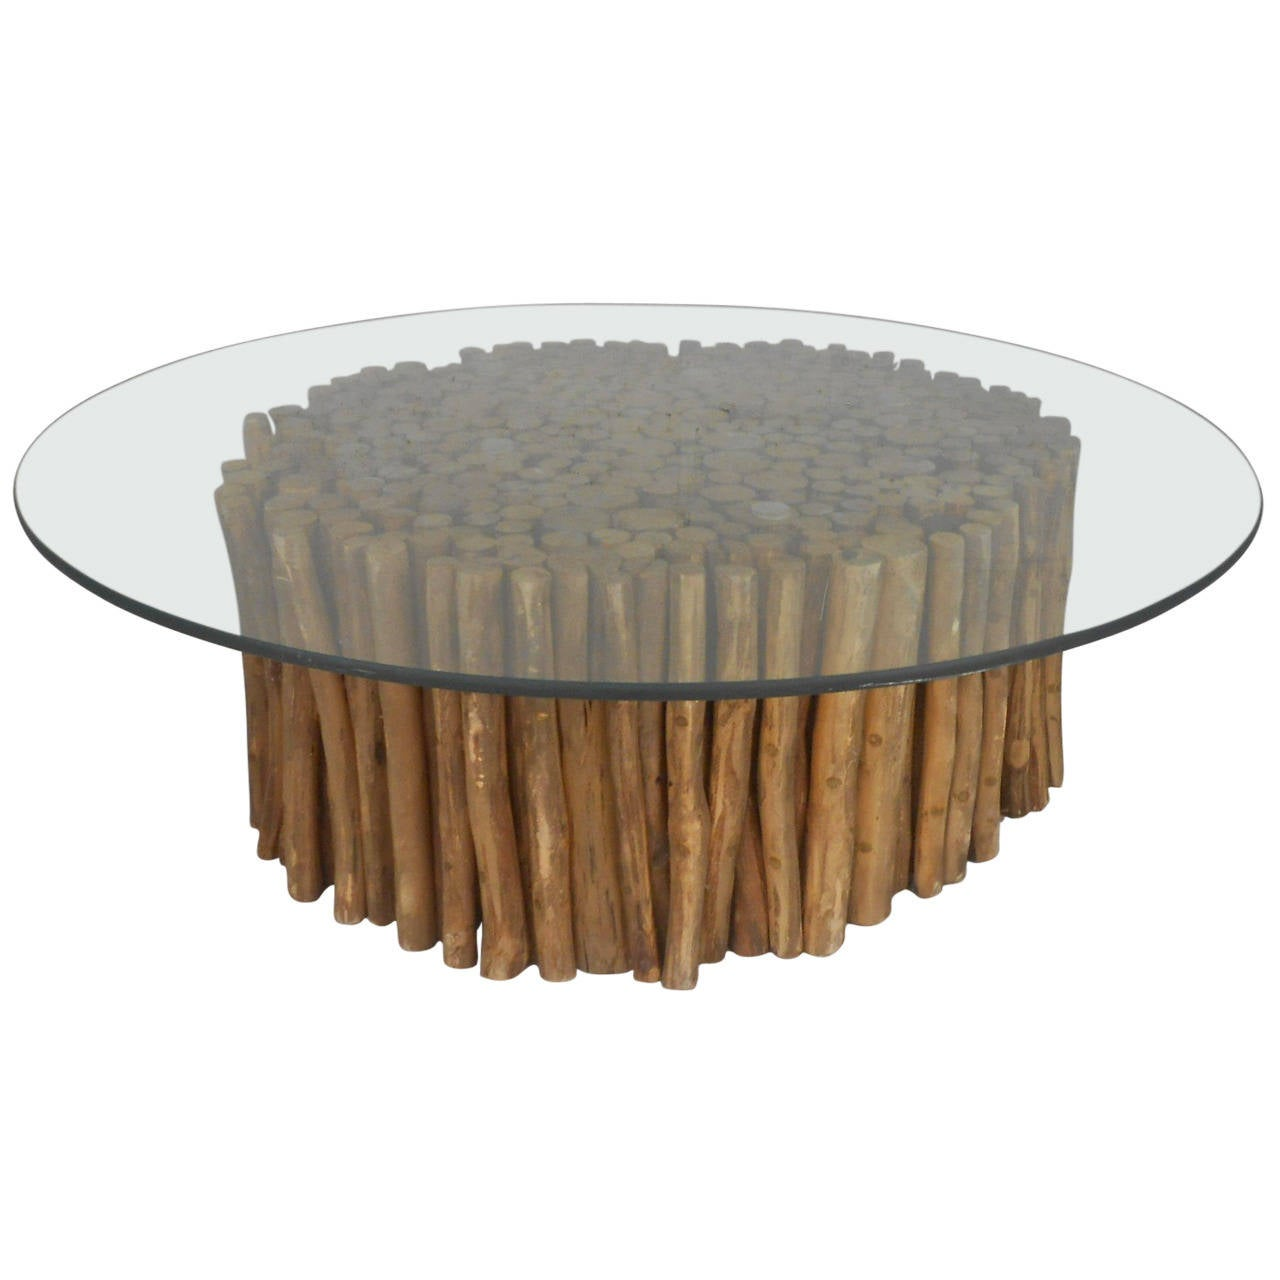 mid-century rustic twig and glass coffee table for sale at 1stdibs